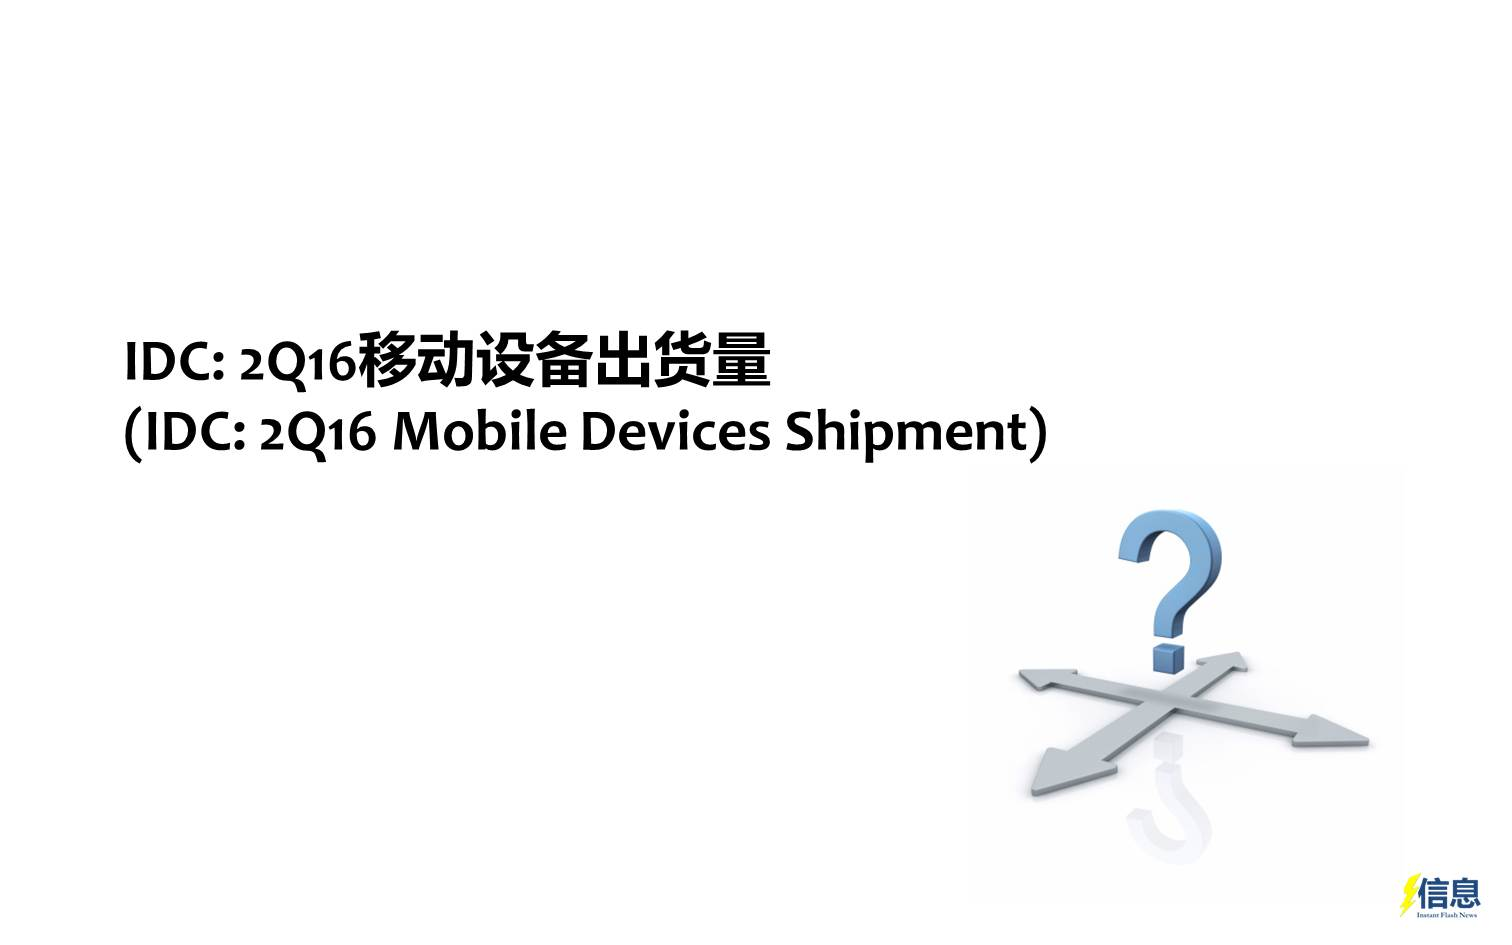 IDC: 2Q16 Mobile Devices (smartphone, feature phone, tablet) Shipment